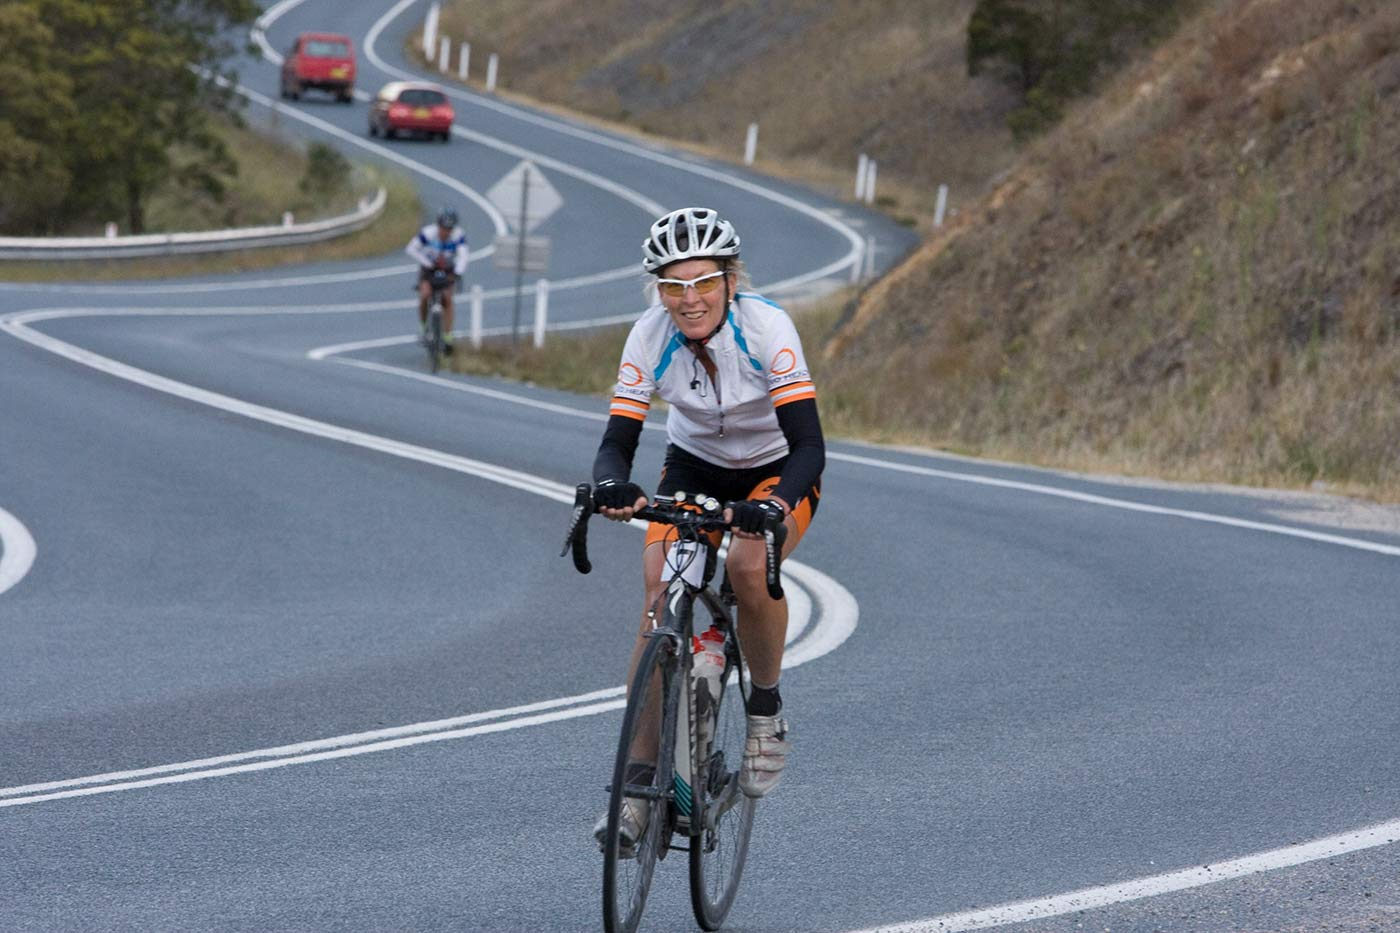 Gaye Bourke riding a bicycle. - click to view larger image